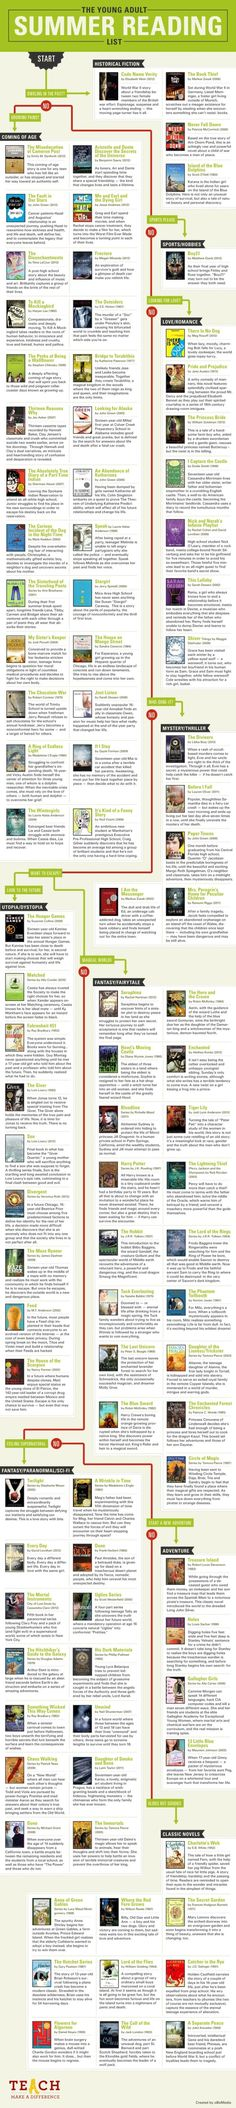 The Young Adult summer reading chart - infographic